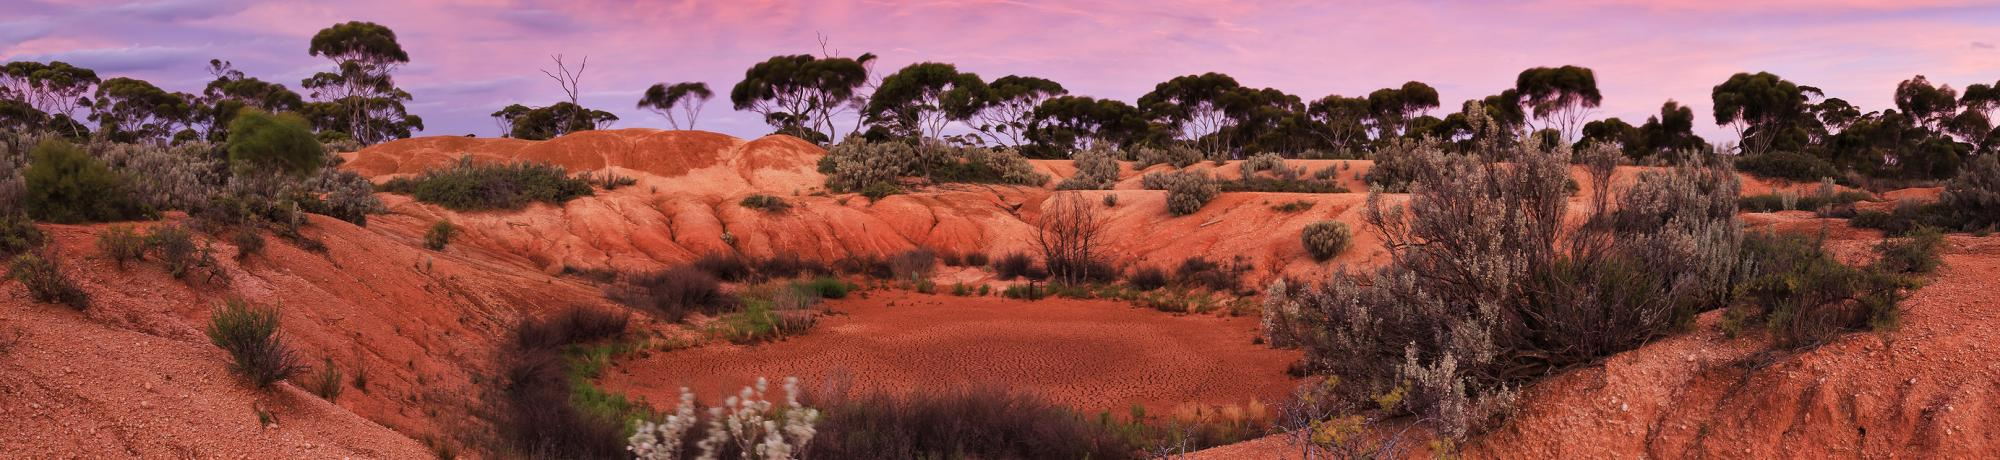 UC Davis Study Abroad, Summer Abroad Australia, Urban to Outback Program, Header Image, Travel Page